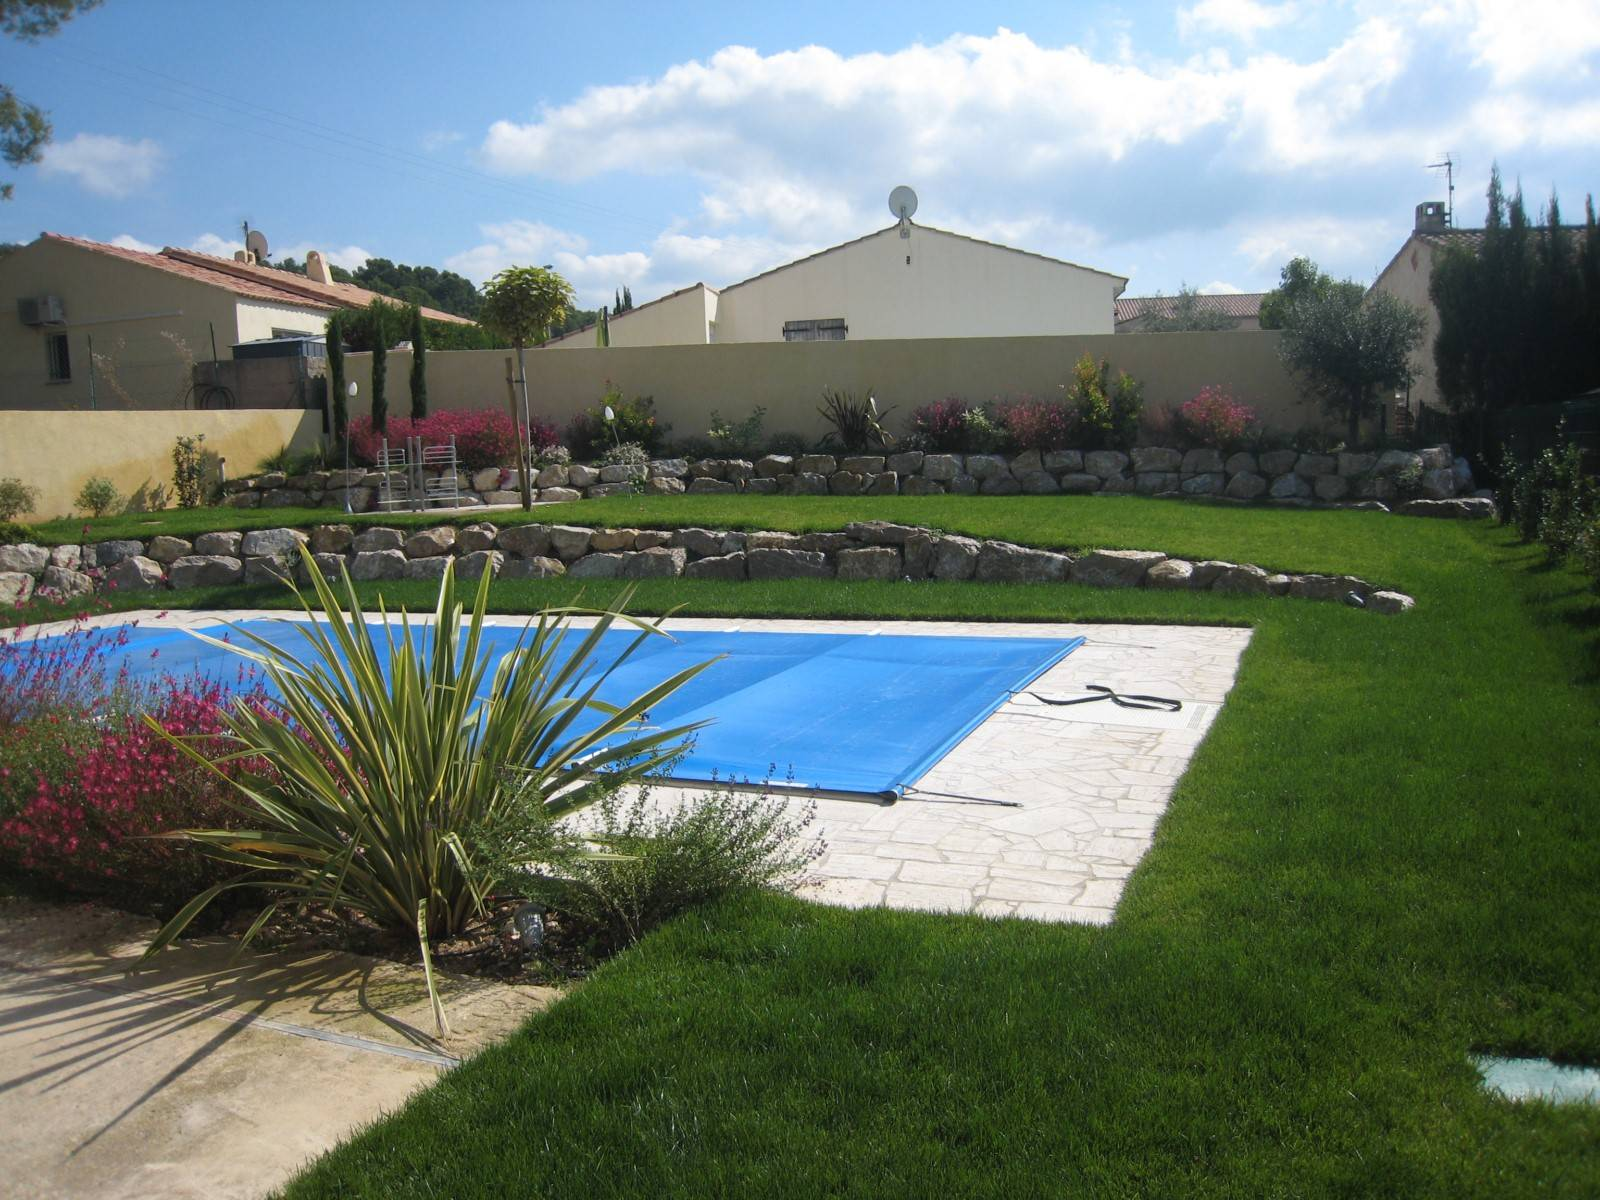 Awesome amenagement autour d une piscine images for Amenagement piscine